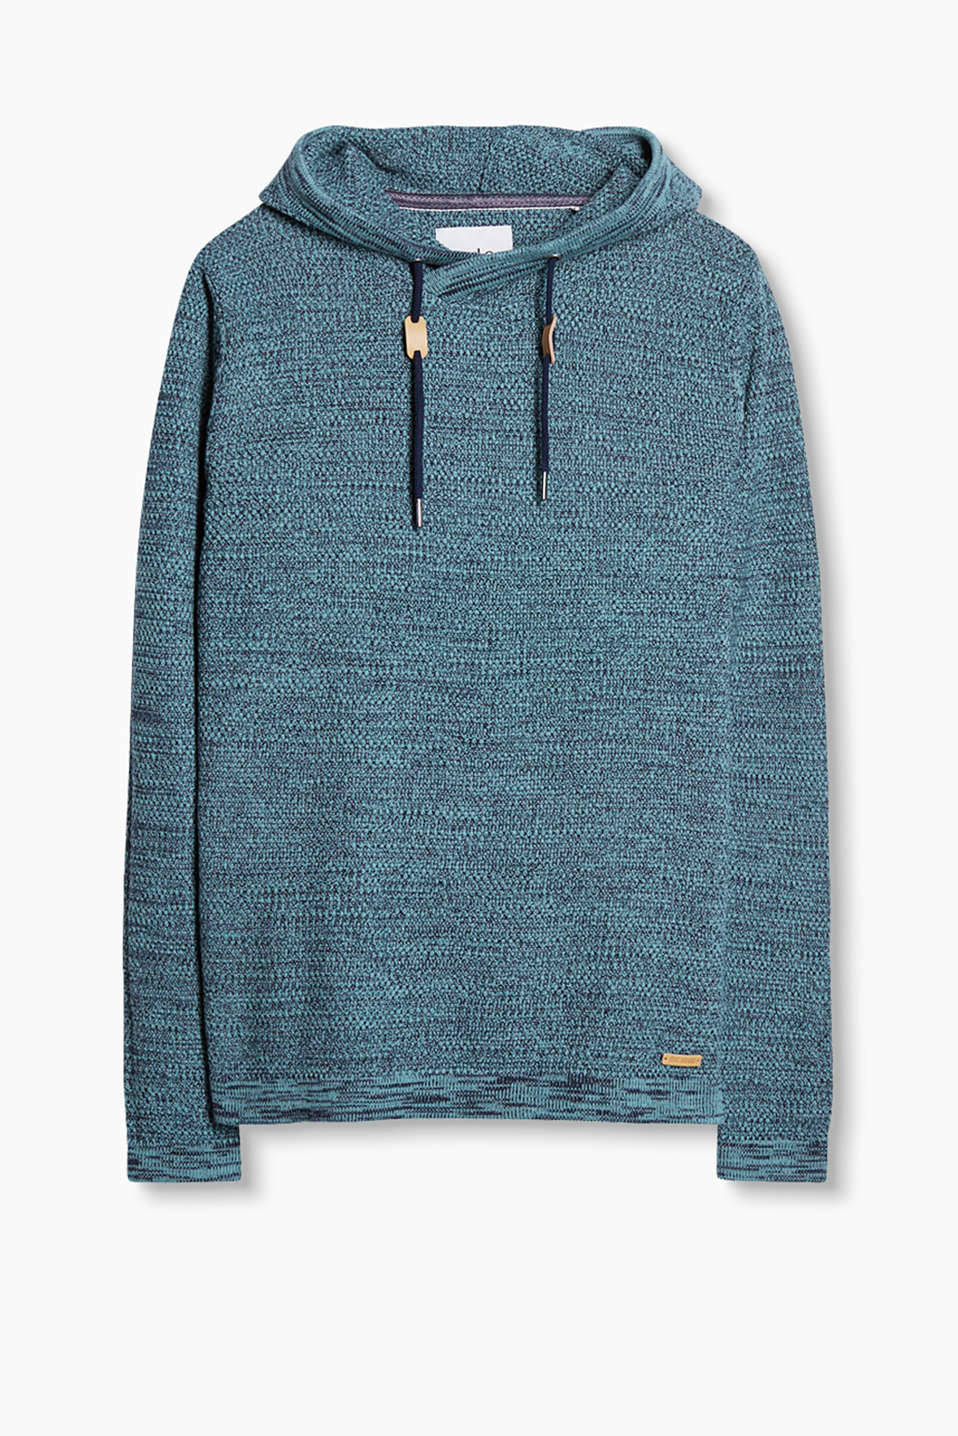 Textured knit hoodie in 100% cotton